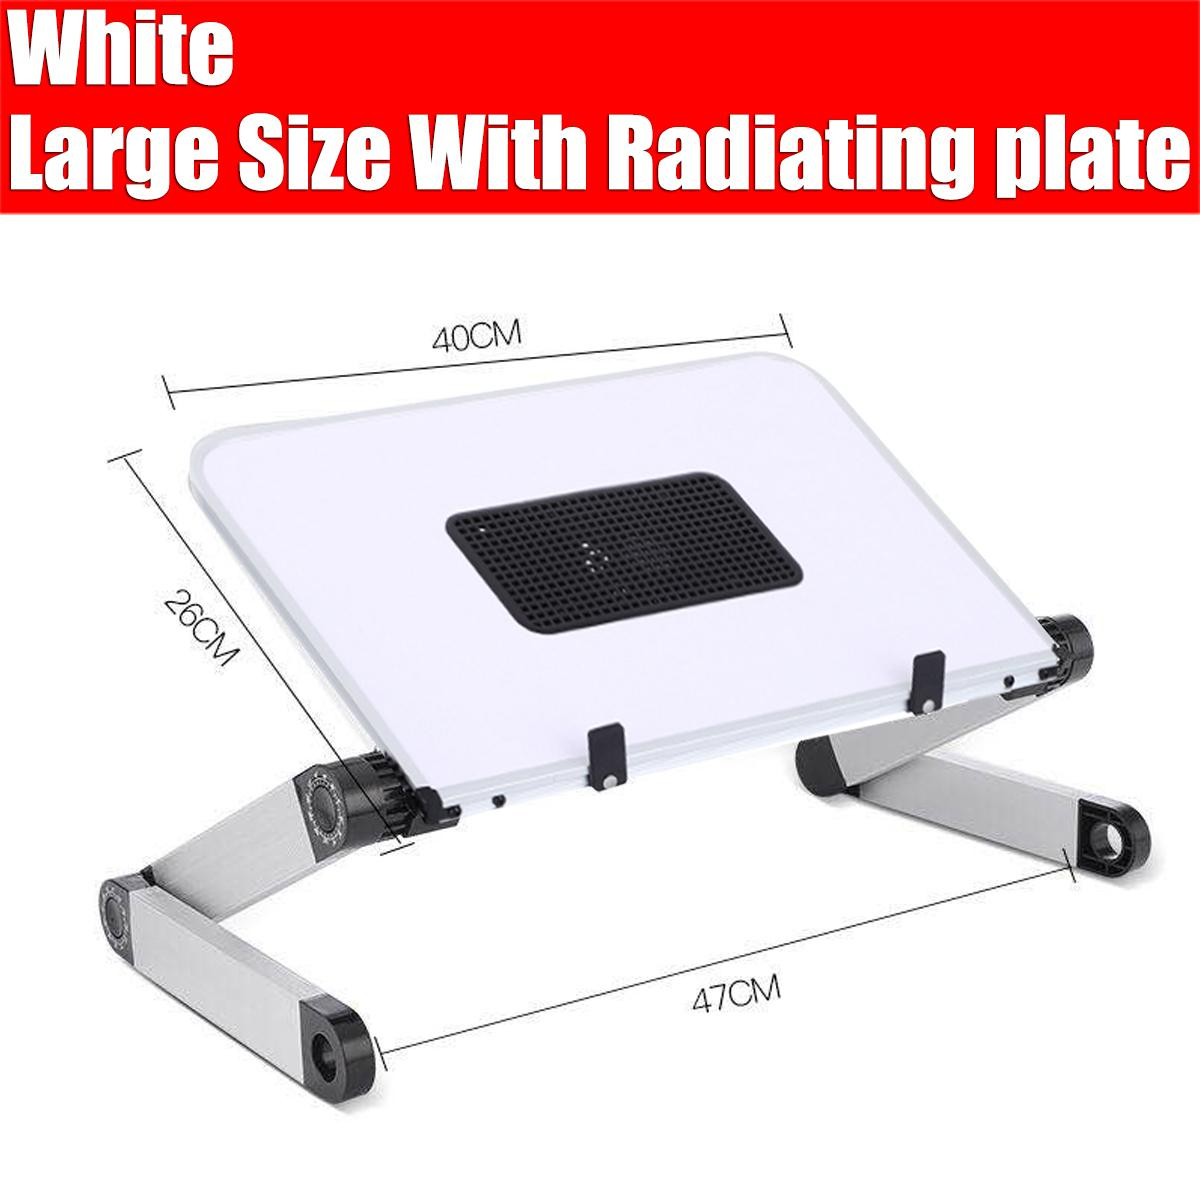 40x26cm Portable 360 Adjustable Aluminum Laptop Stand Desk Table With Adjustable Stand With Radiator Plate Mouse Board Ergonomic Design For Using In Bed Sofa Carpet Gifts Black White White With Radiating Fan